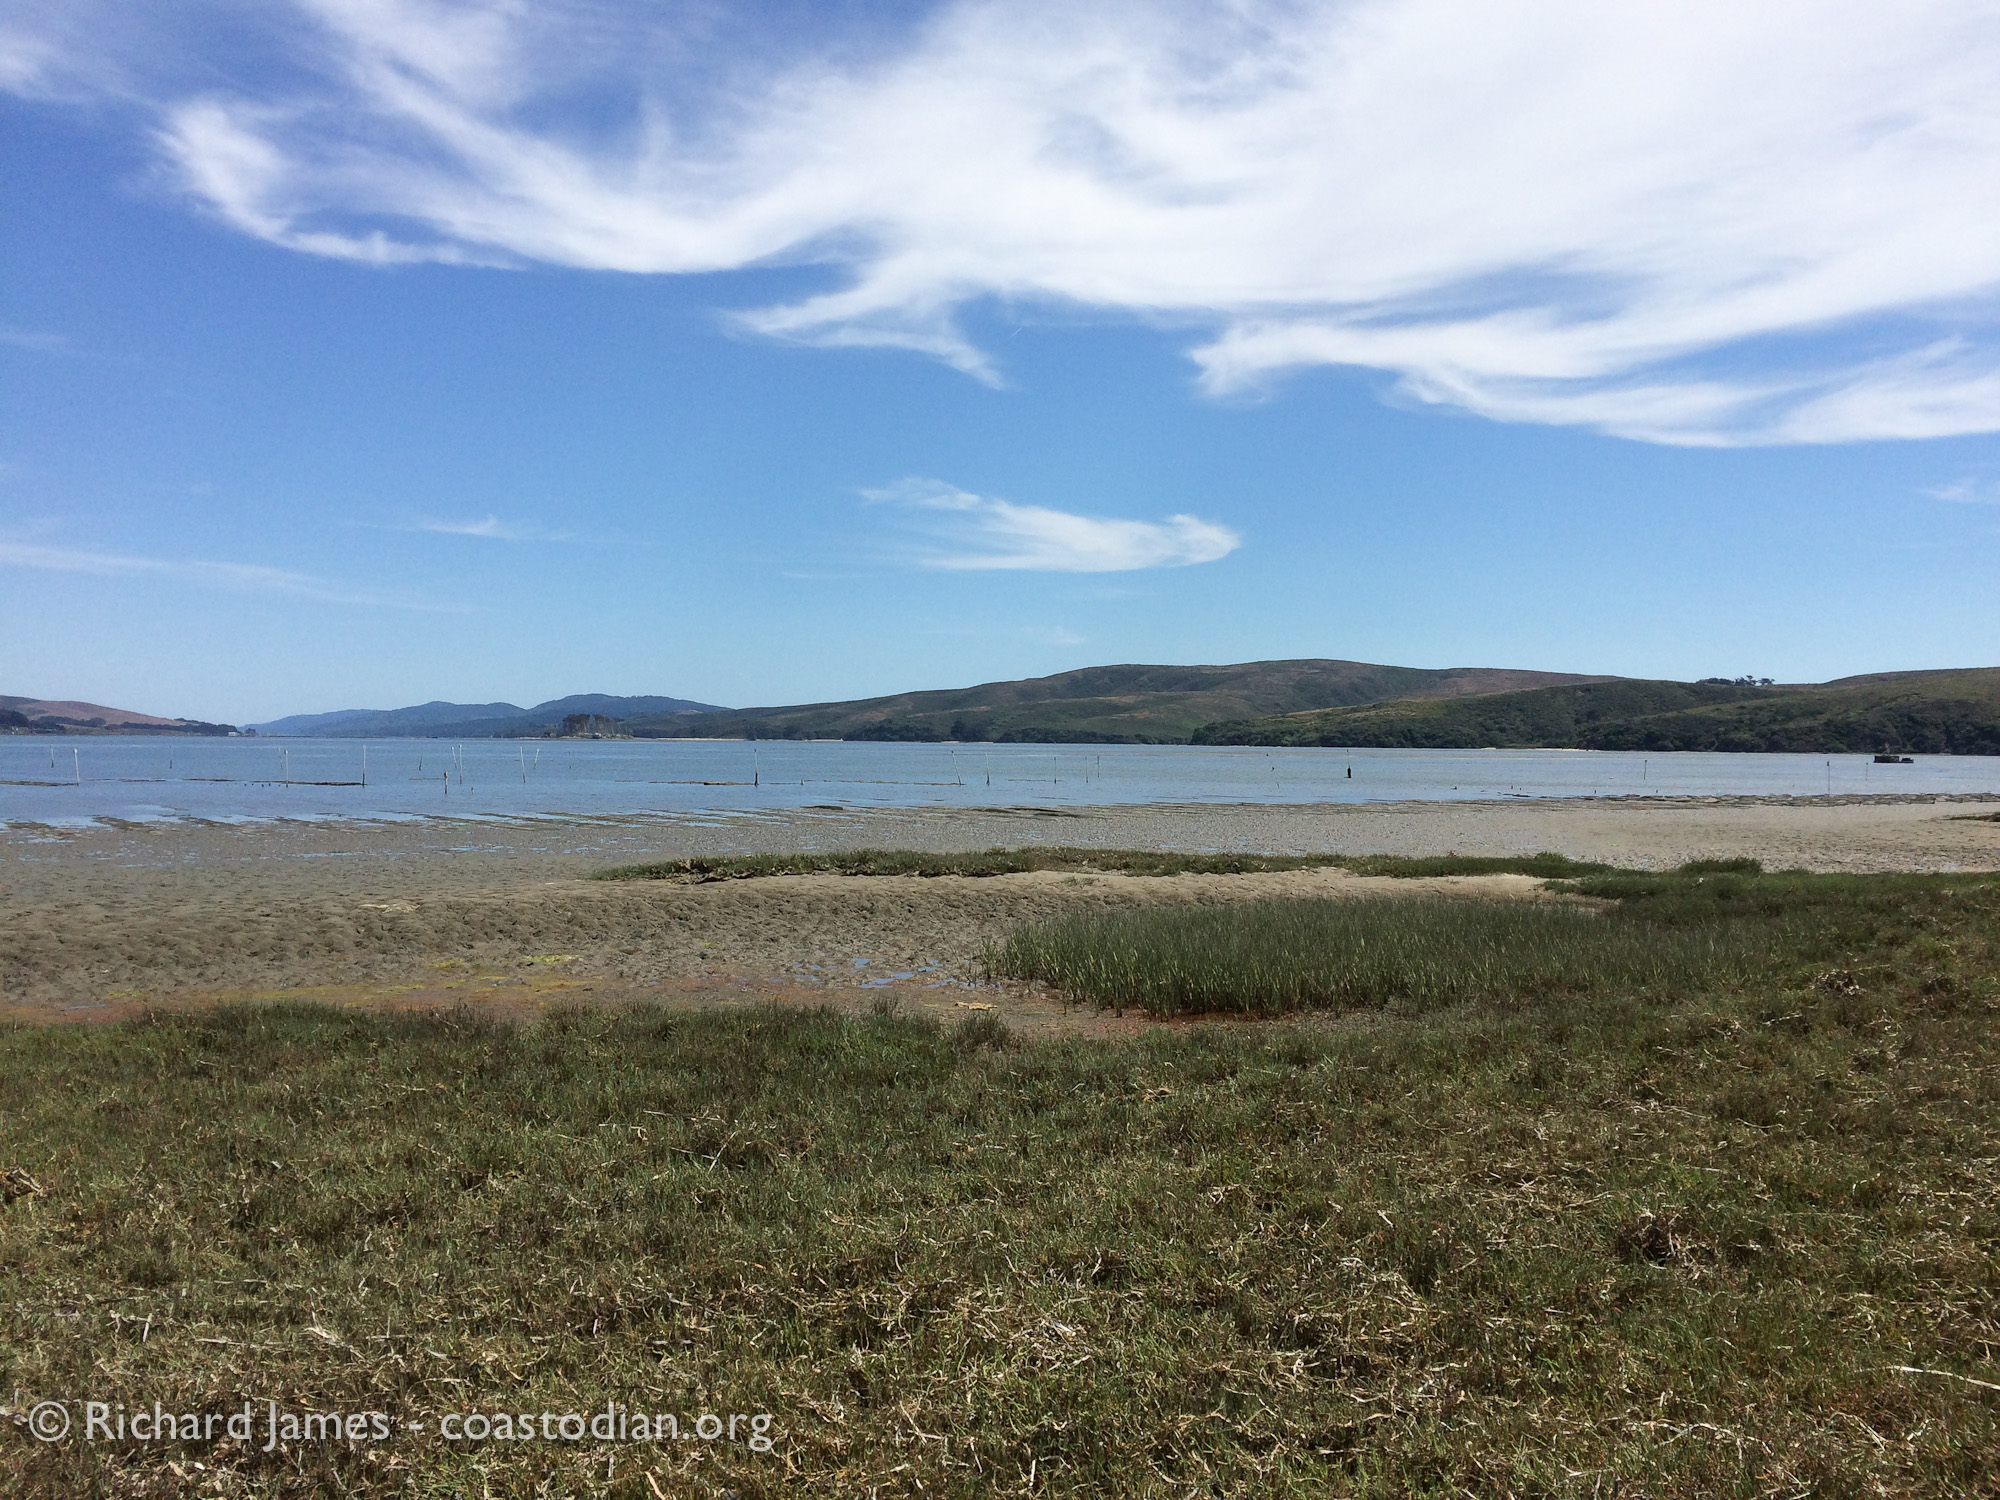 View of Tomales Bay from Tom's Point